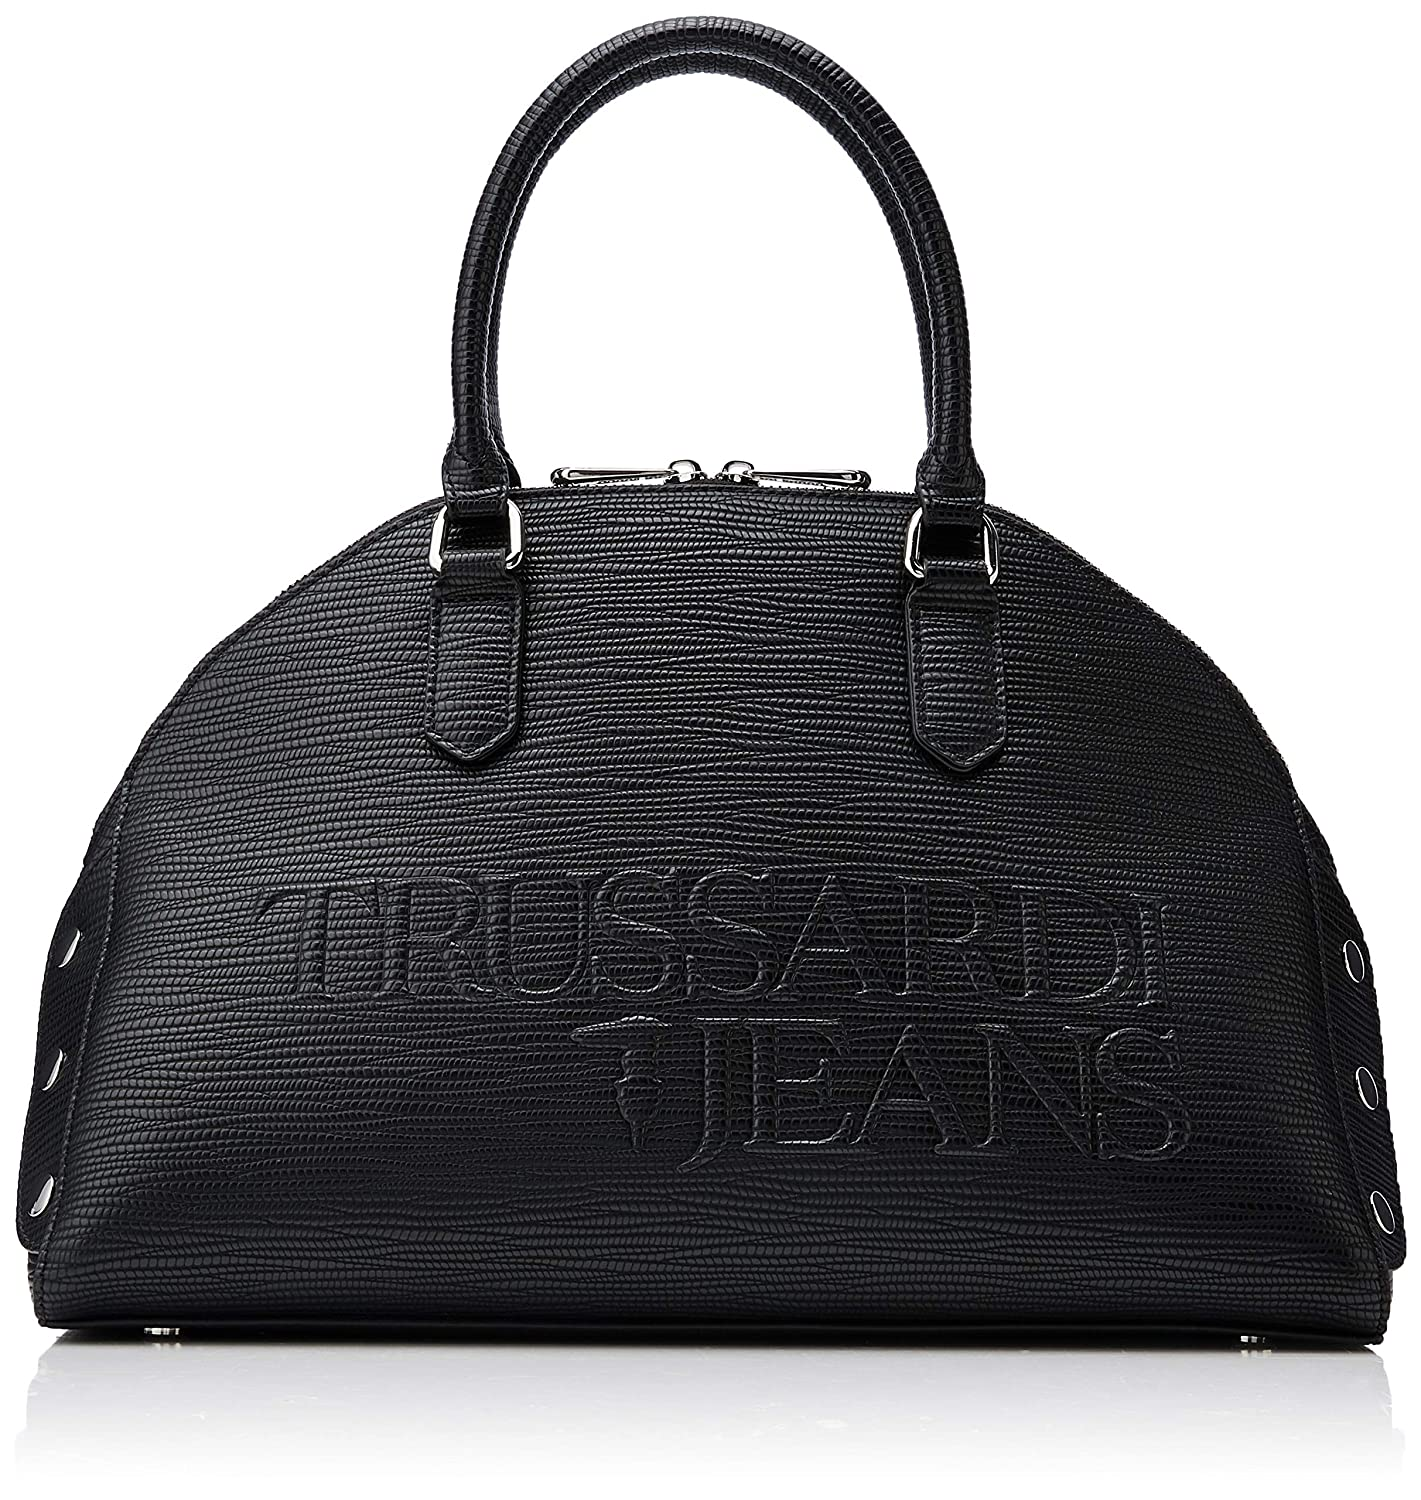 TRUSSARDI MELLY BAULETTO BAG 75B00675